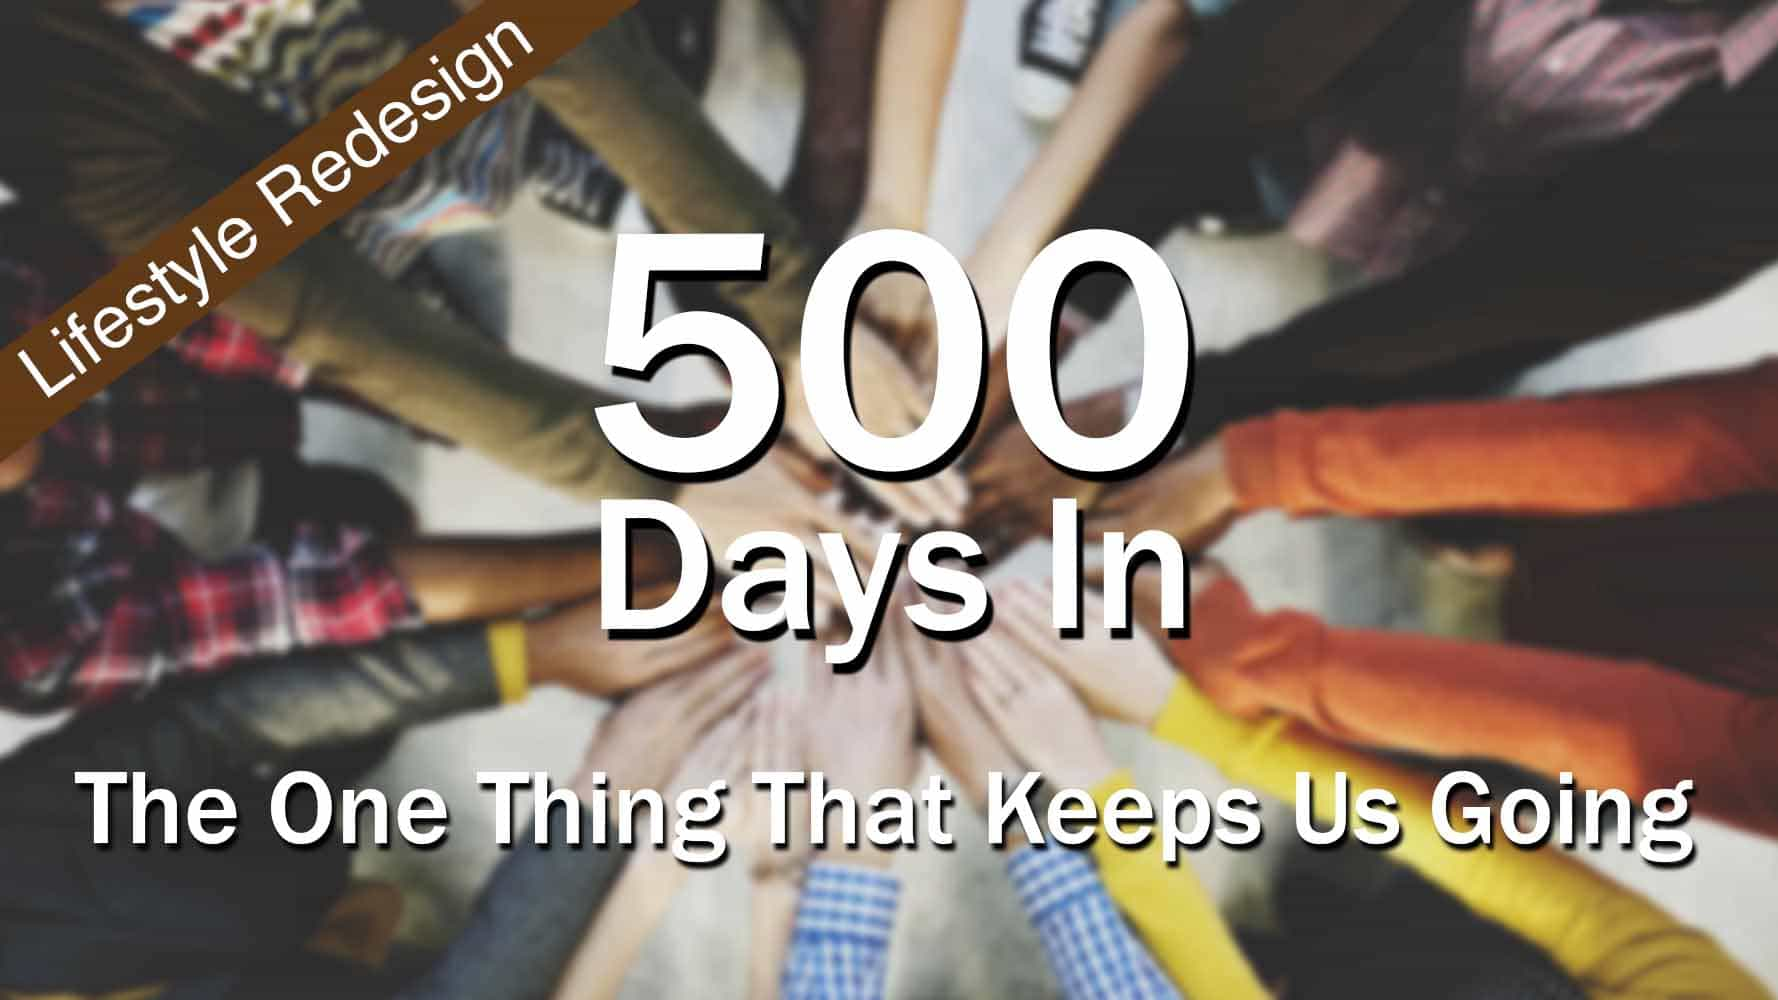 Lifestyle  Redesign  The One Thing That Keeps Us Going – 500 Days In